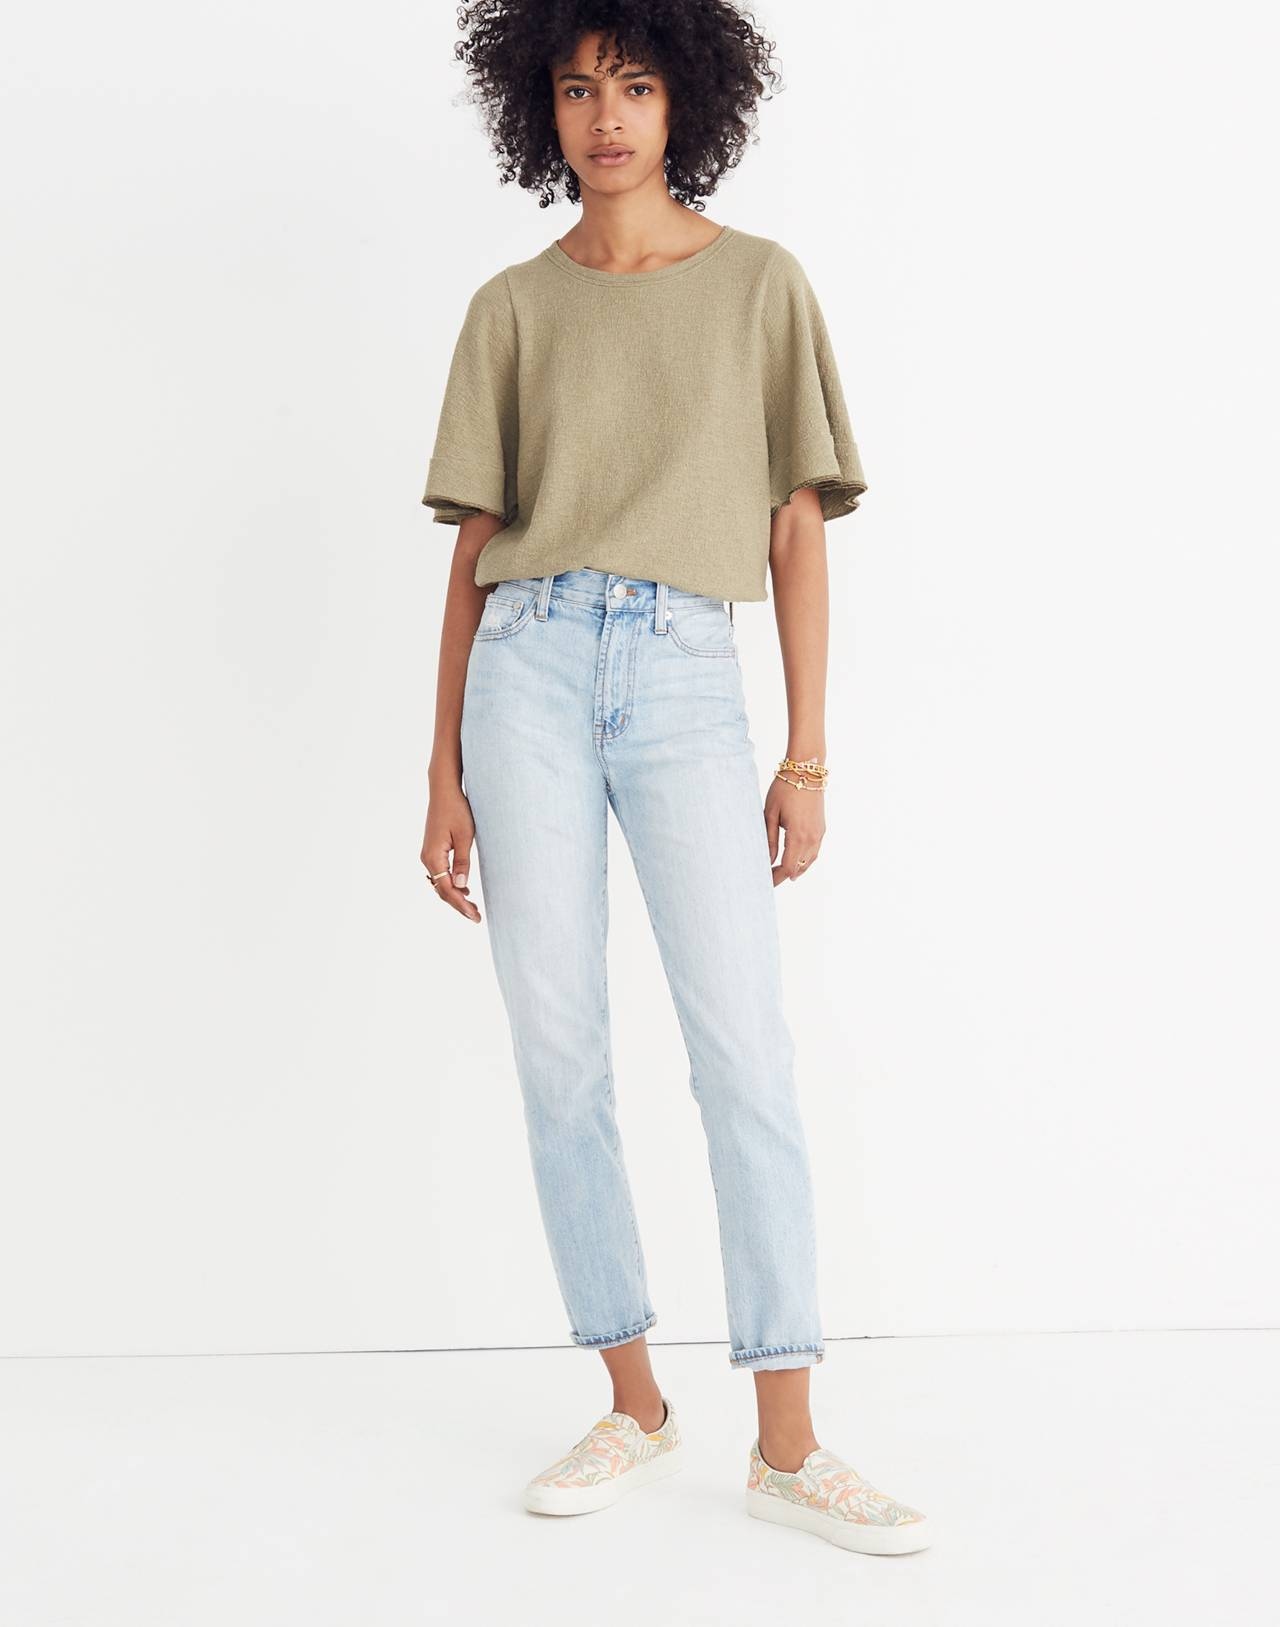 Texture & Thread Flutter-Sleeve Top in tundra image 1